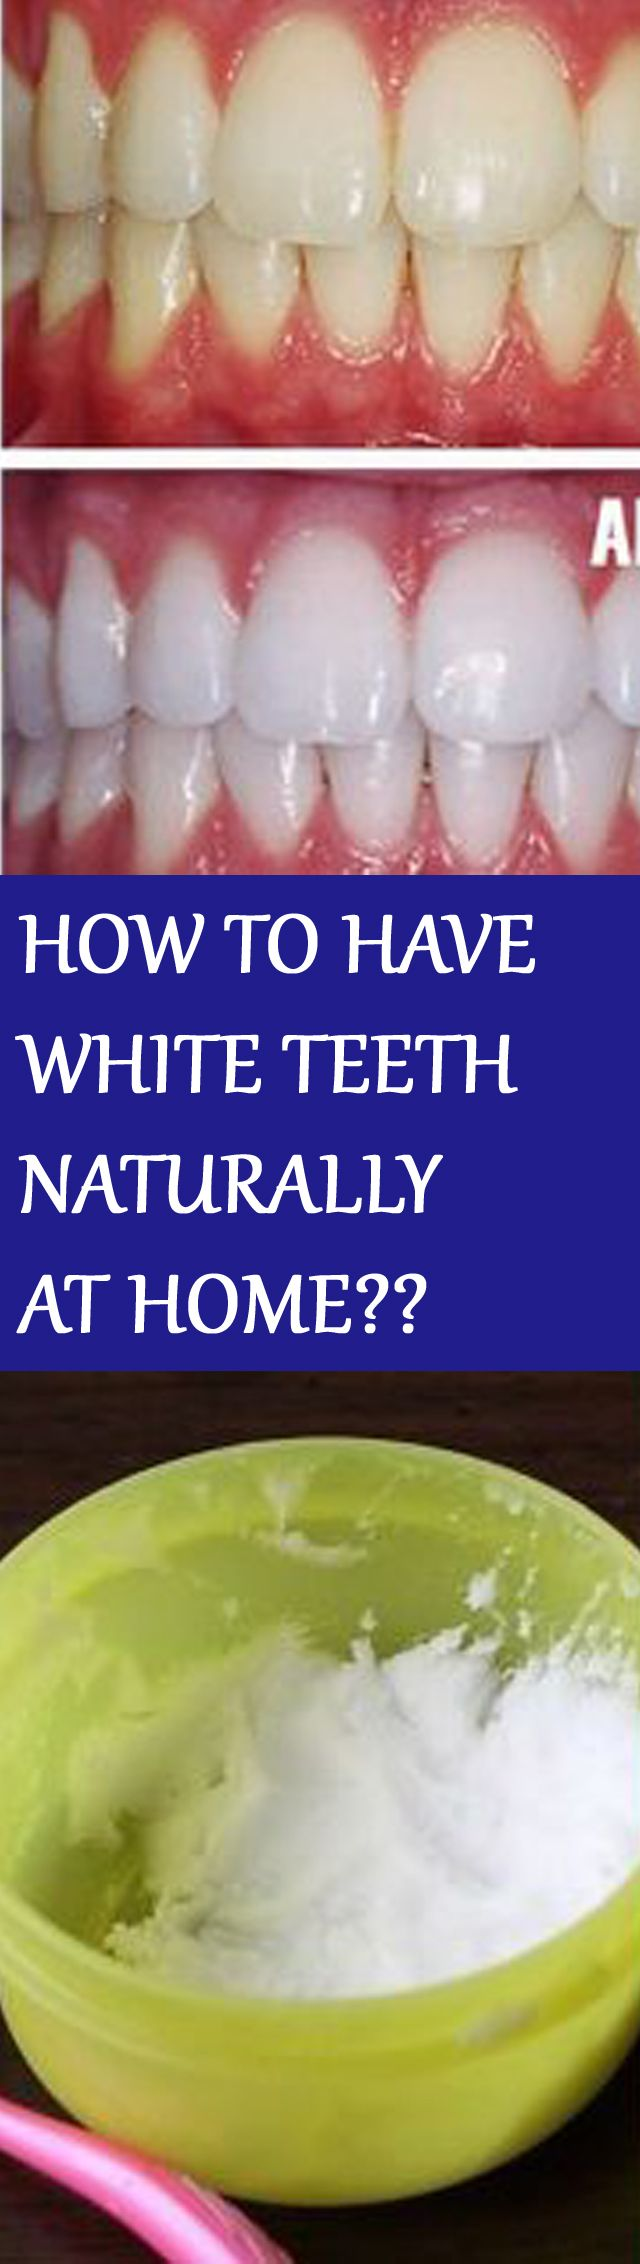 how to get white teeth in 3 minutes